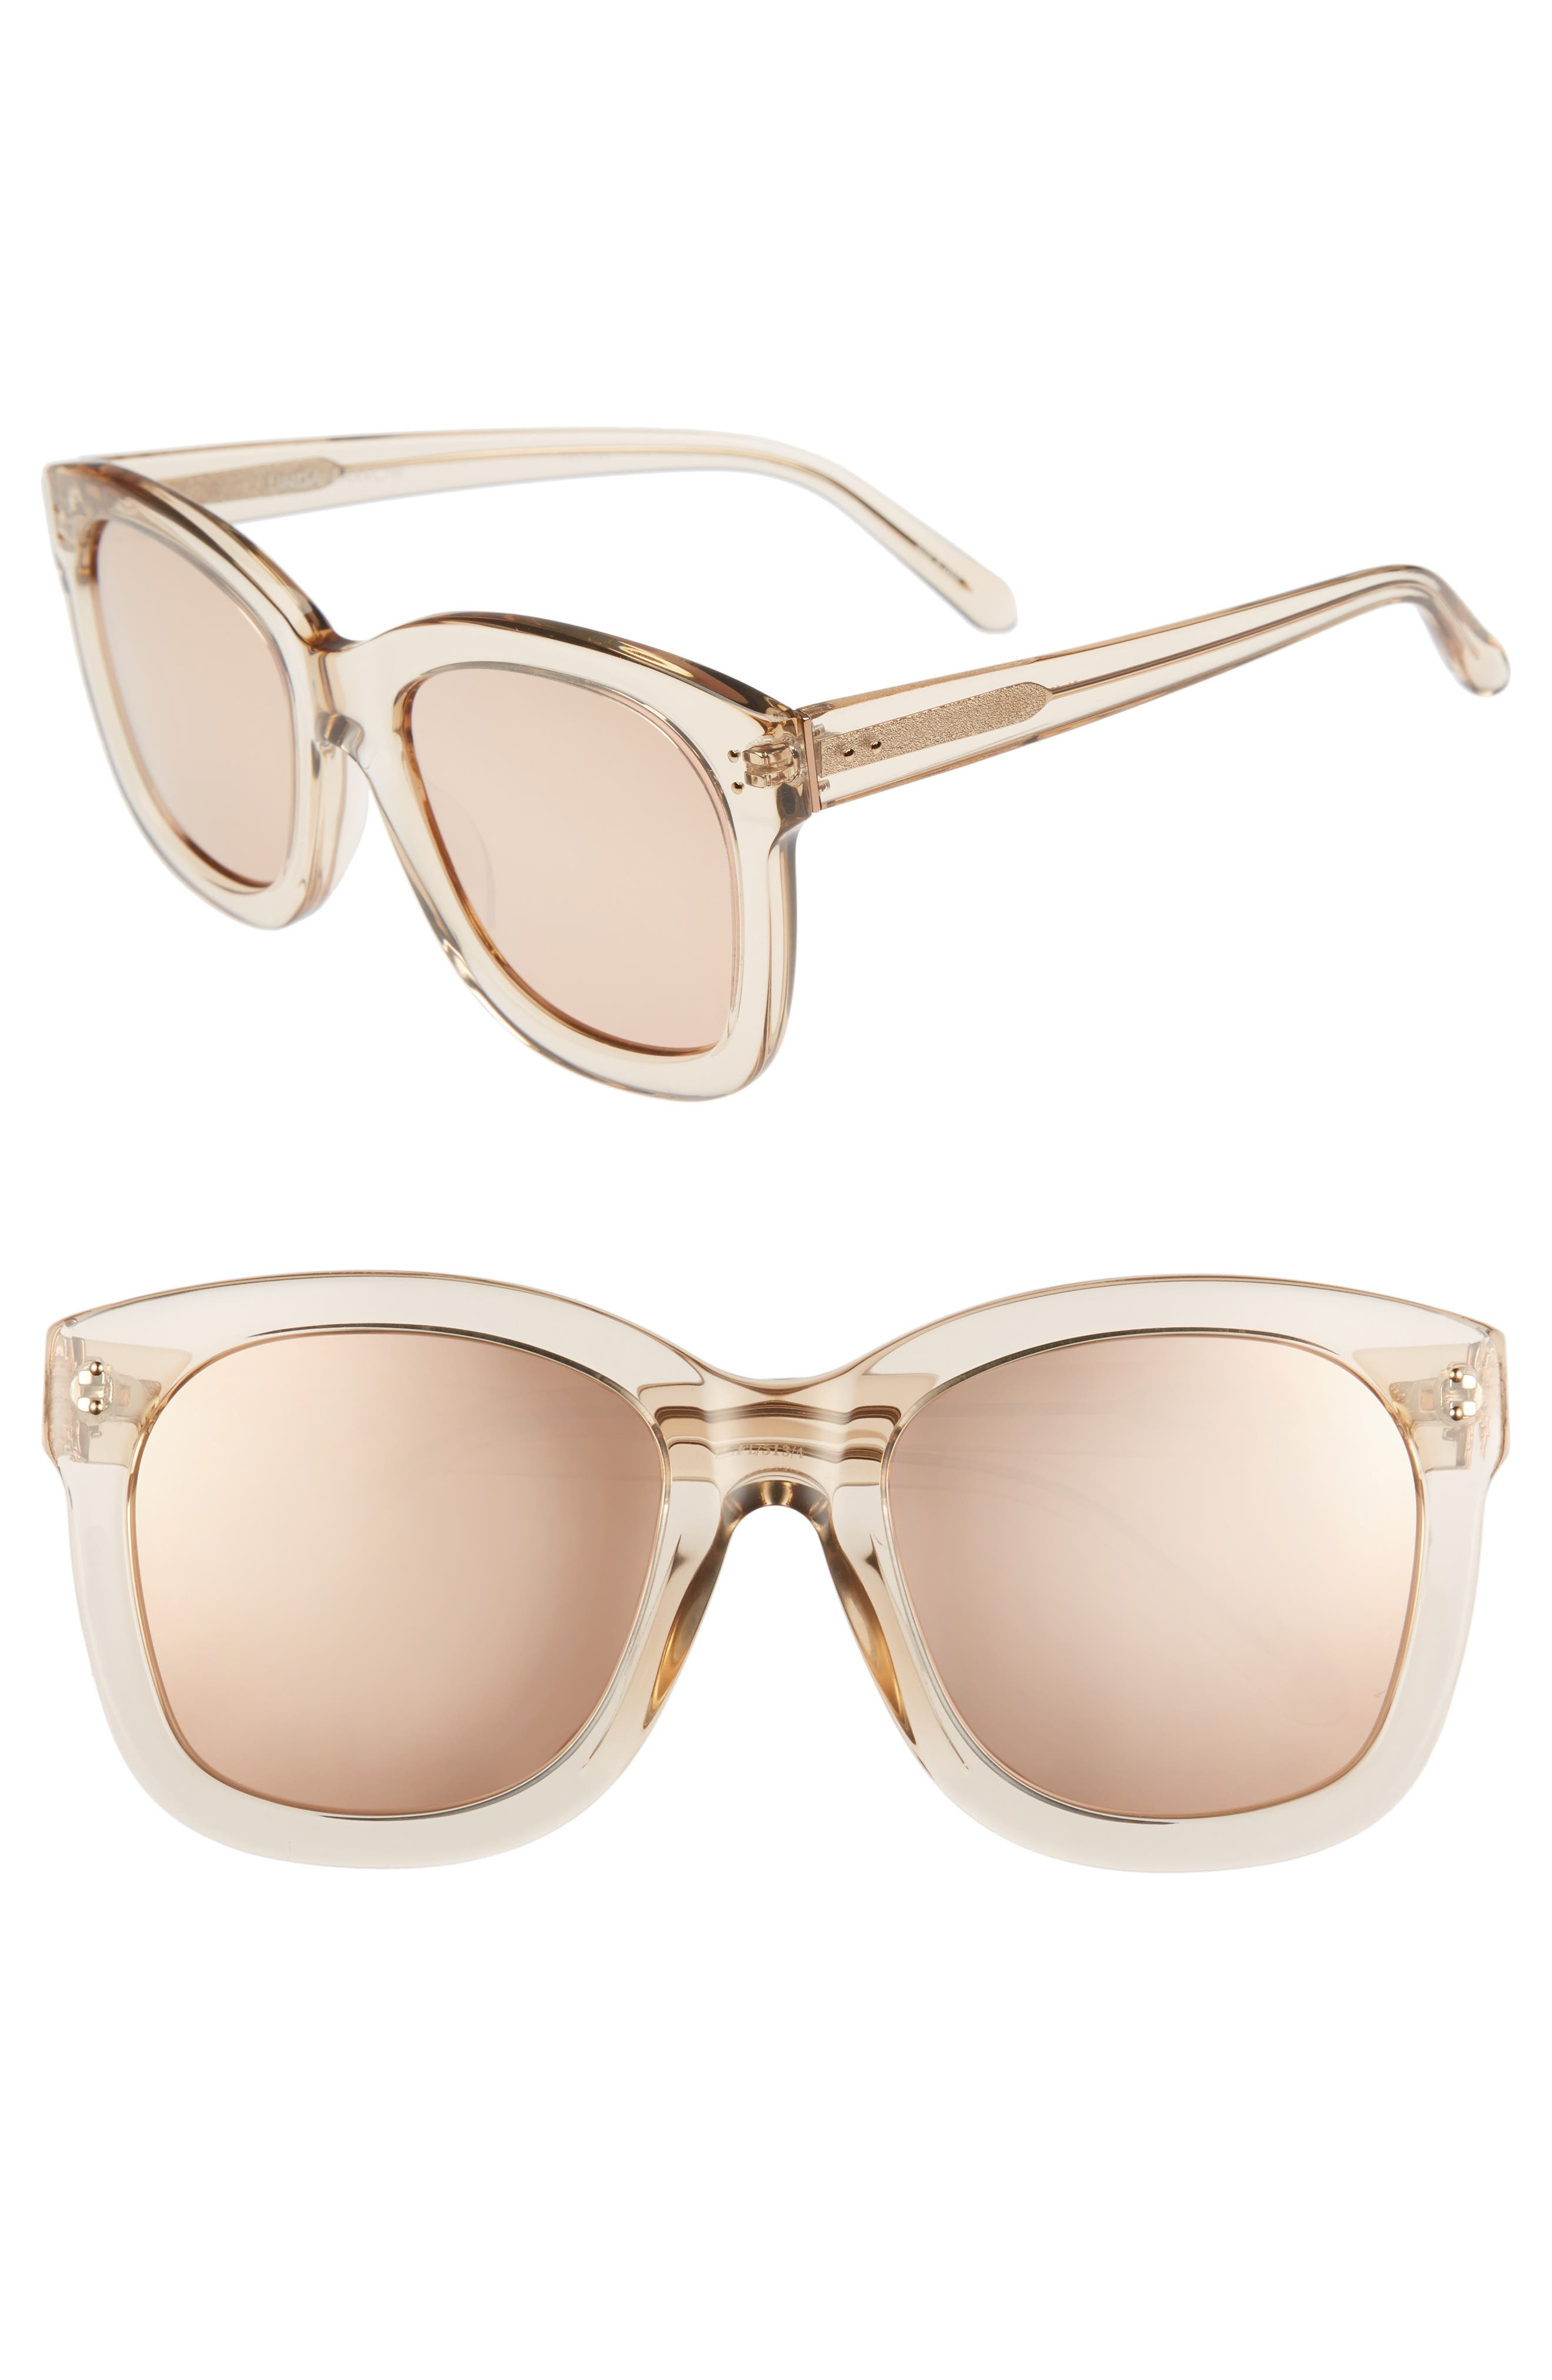 56mm Mirrored Sunglasses,                             Main thumbnail 1, color,                             Ash/ Rose Gold